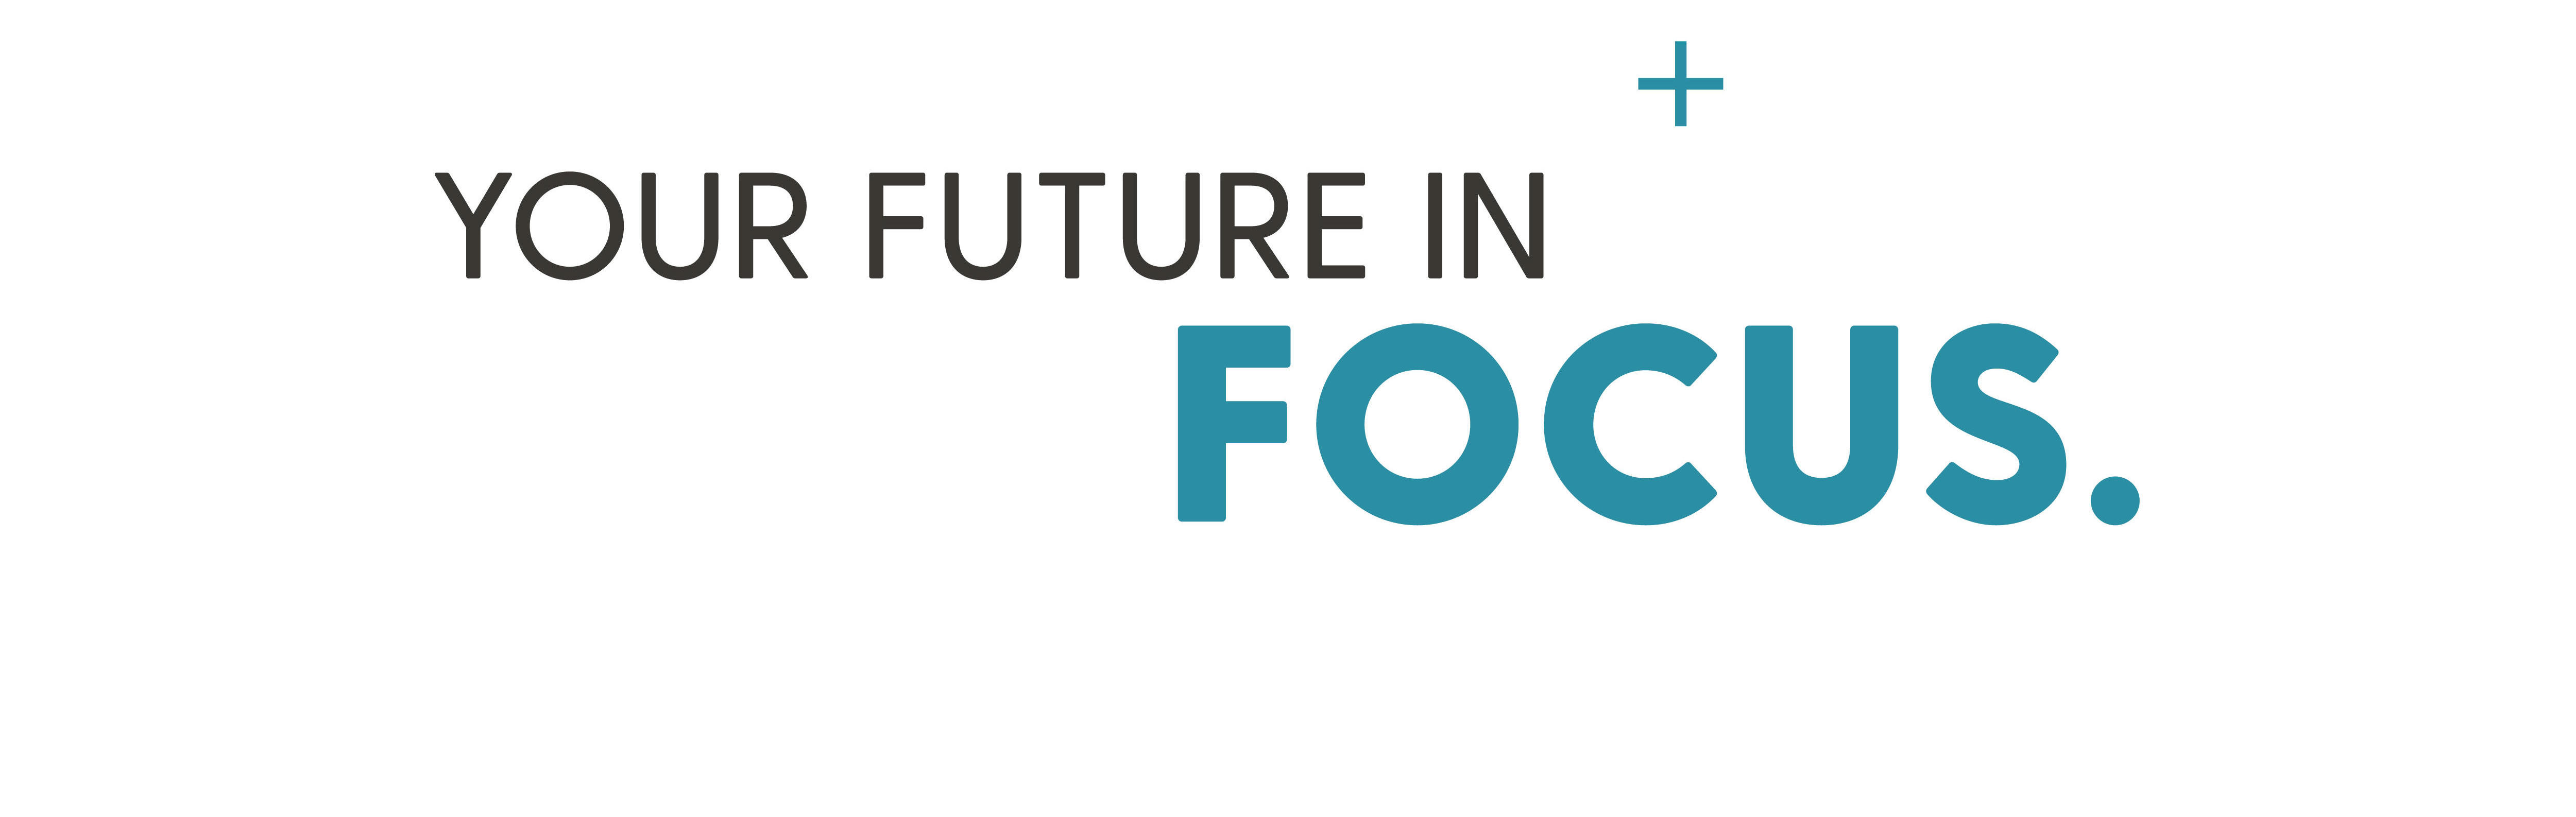 MJ Tagline - Your Future in Focus